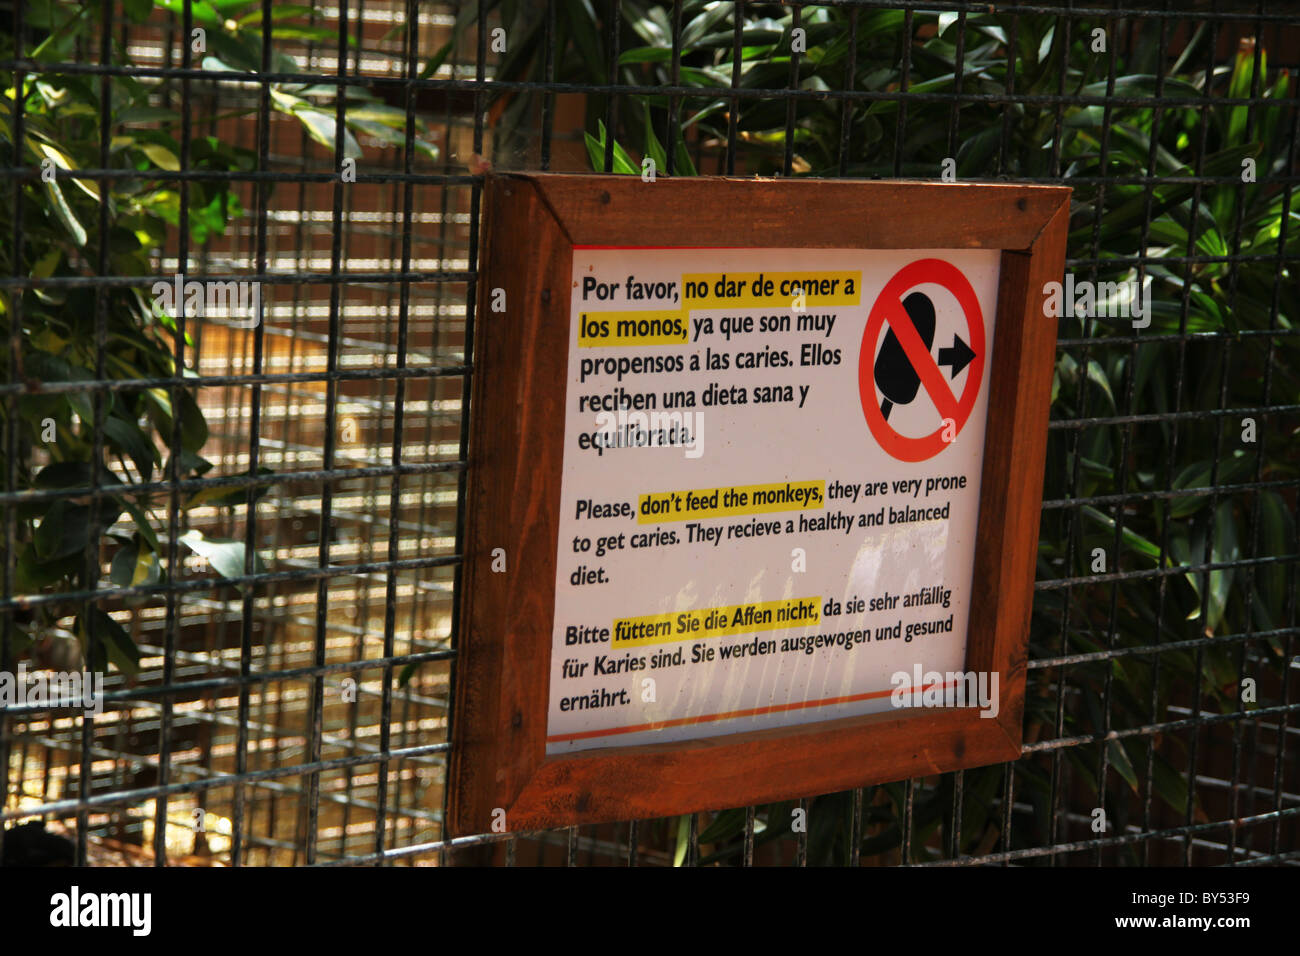 Don't feed the monkeys sign at zoo park - Stock Image